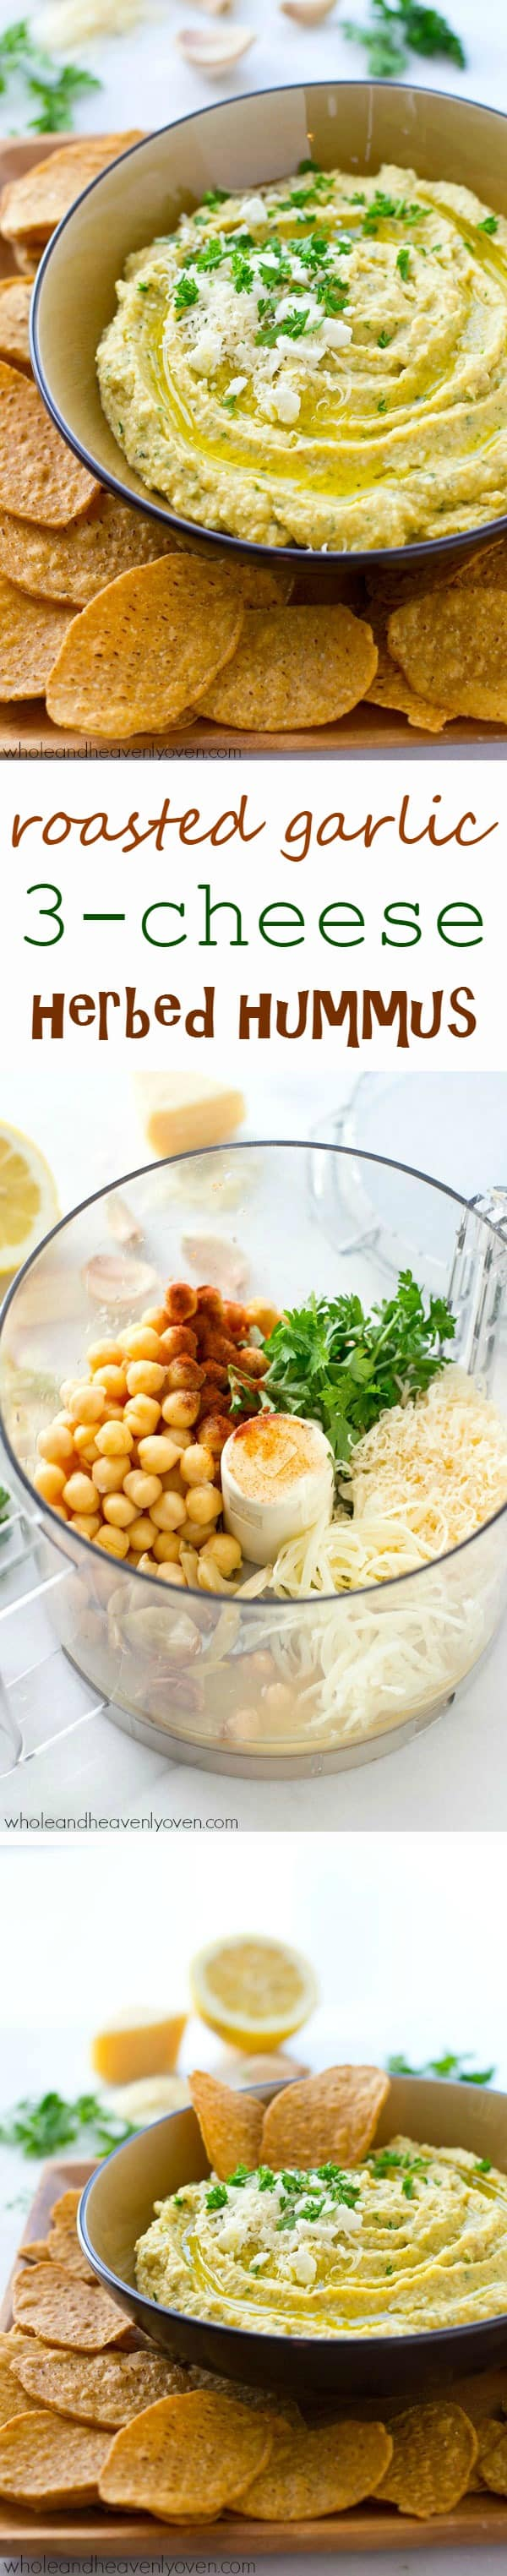 A trio of cheeses, homemade roasted garlic, and fresh herbs star in this super-easy and unbelievably smooth hummus.---It's the perfect dip for any holiday appetizer table! @WholeHeavenly